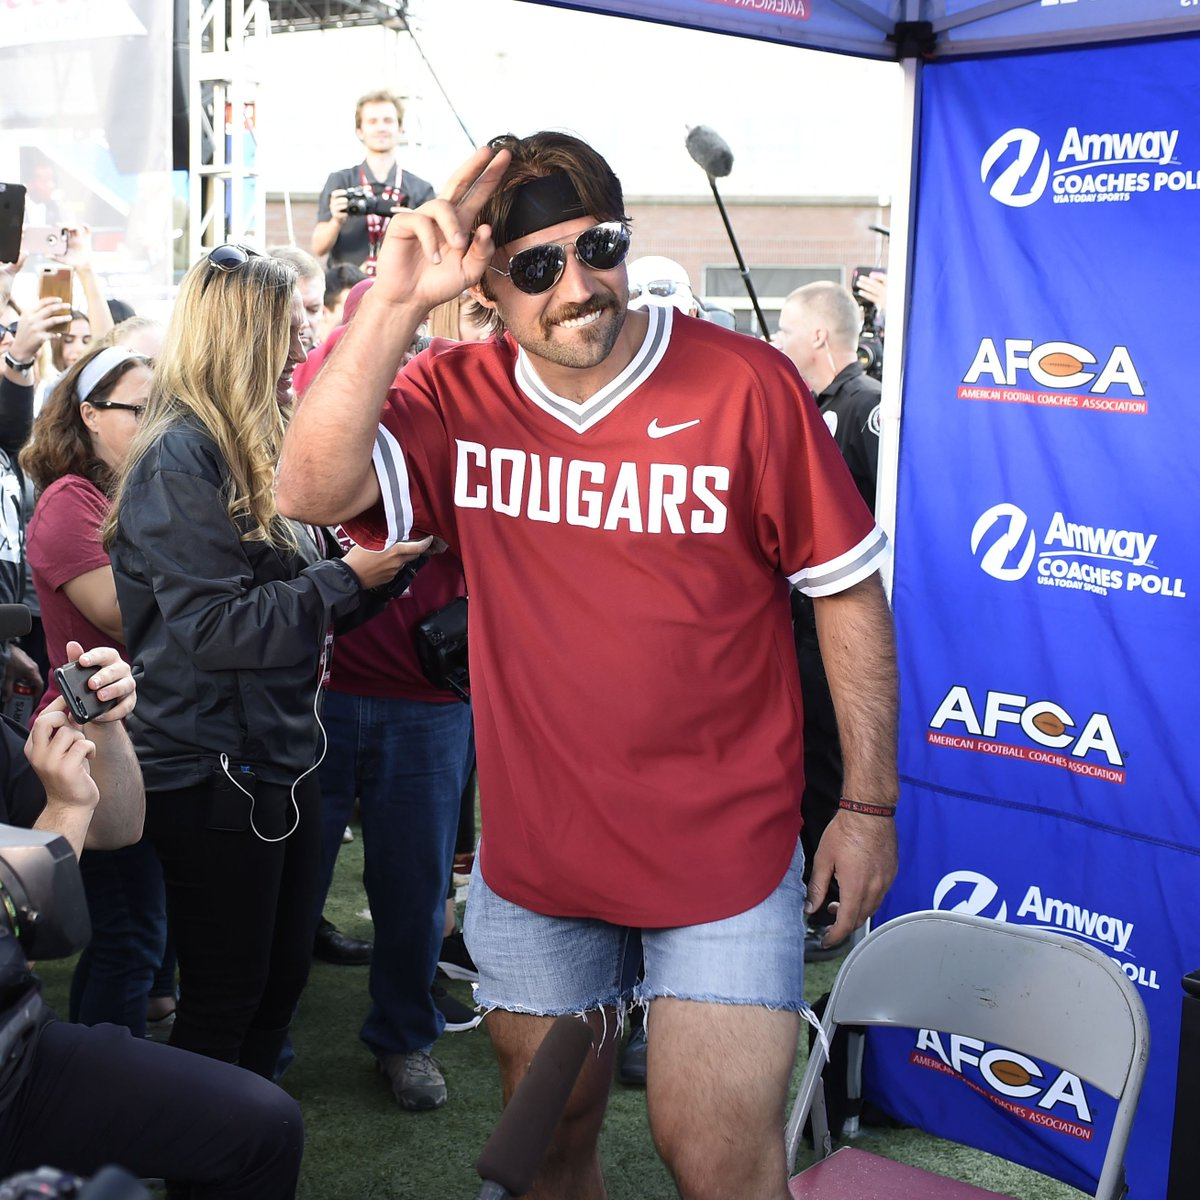 Cougs shirt. Short jorts. Headband. Glasses. Gardner Minshew is back in Pullman supporting Washington State 😂